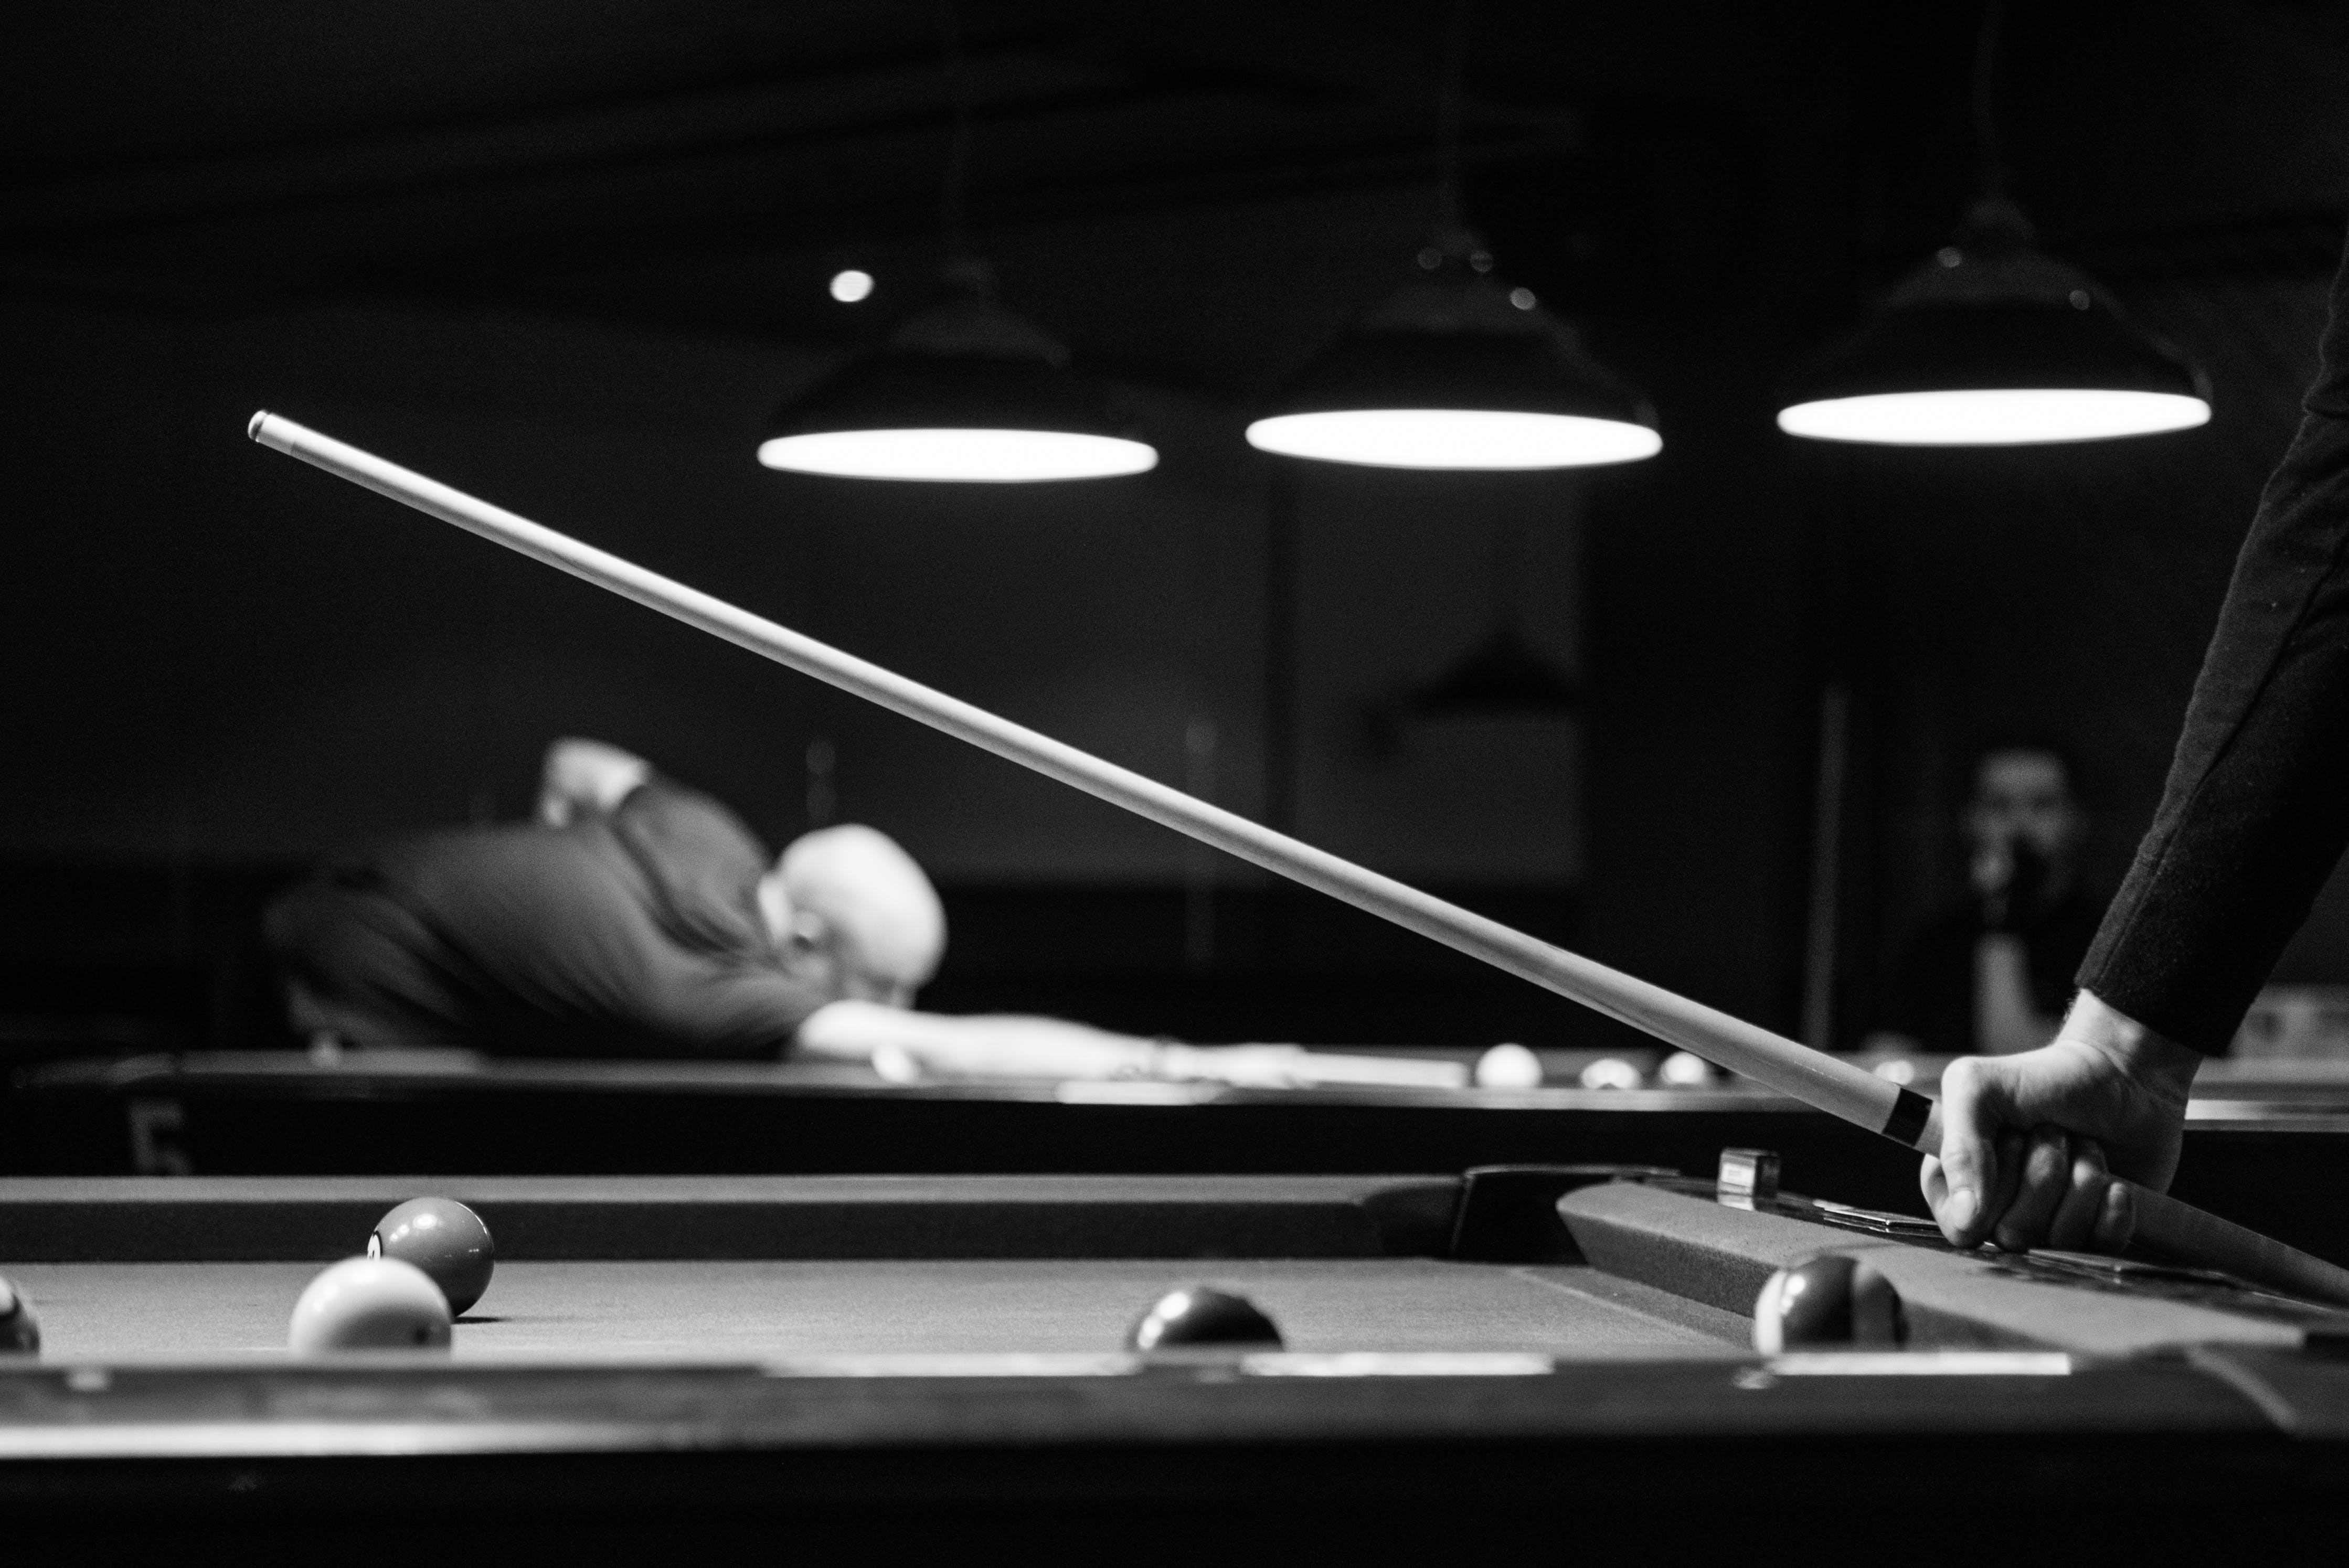 billiards black and white. Grayscale Photo Of Man Holding Cue-stick Billiards Black And White 2